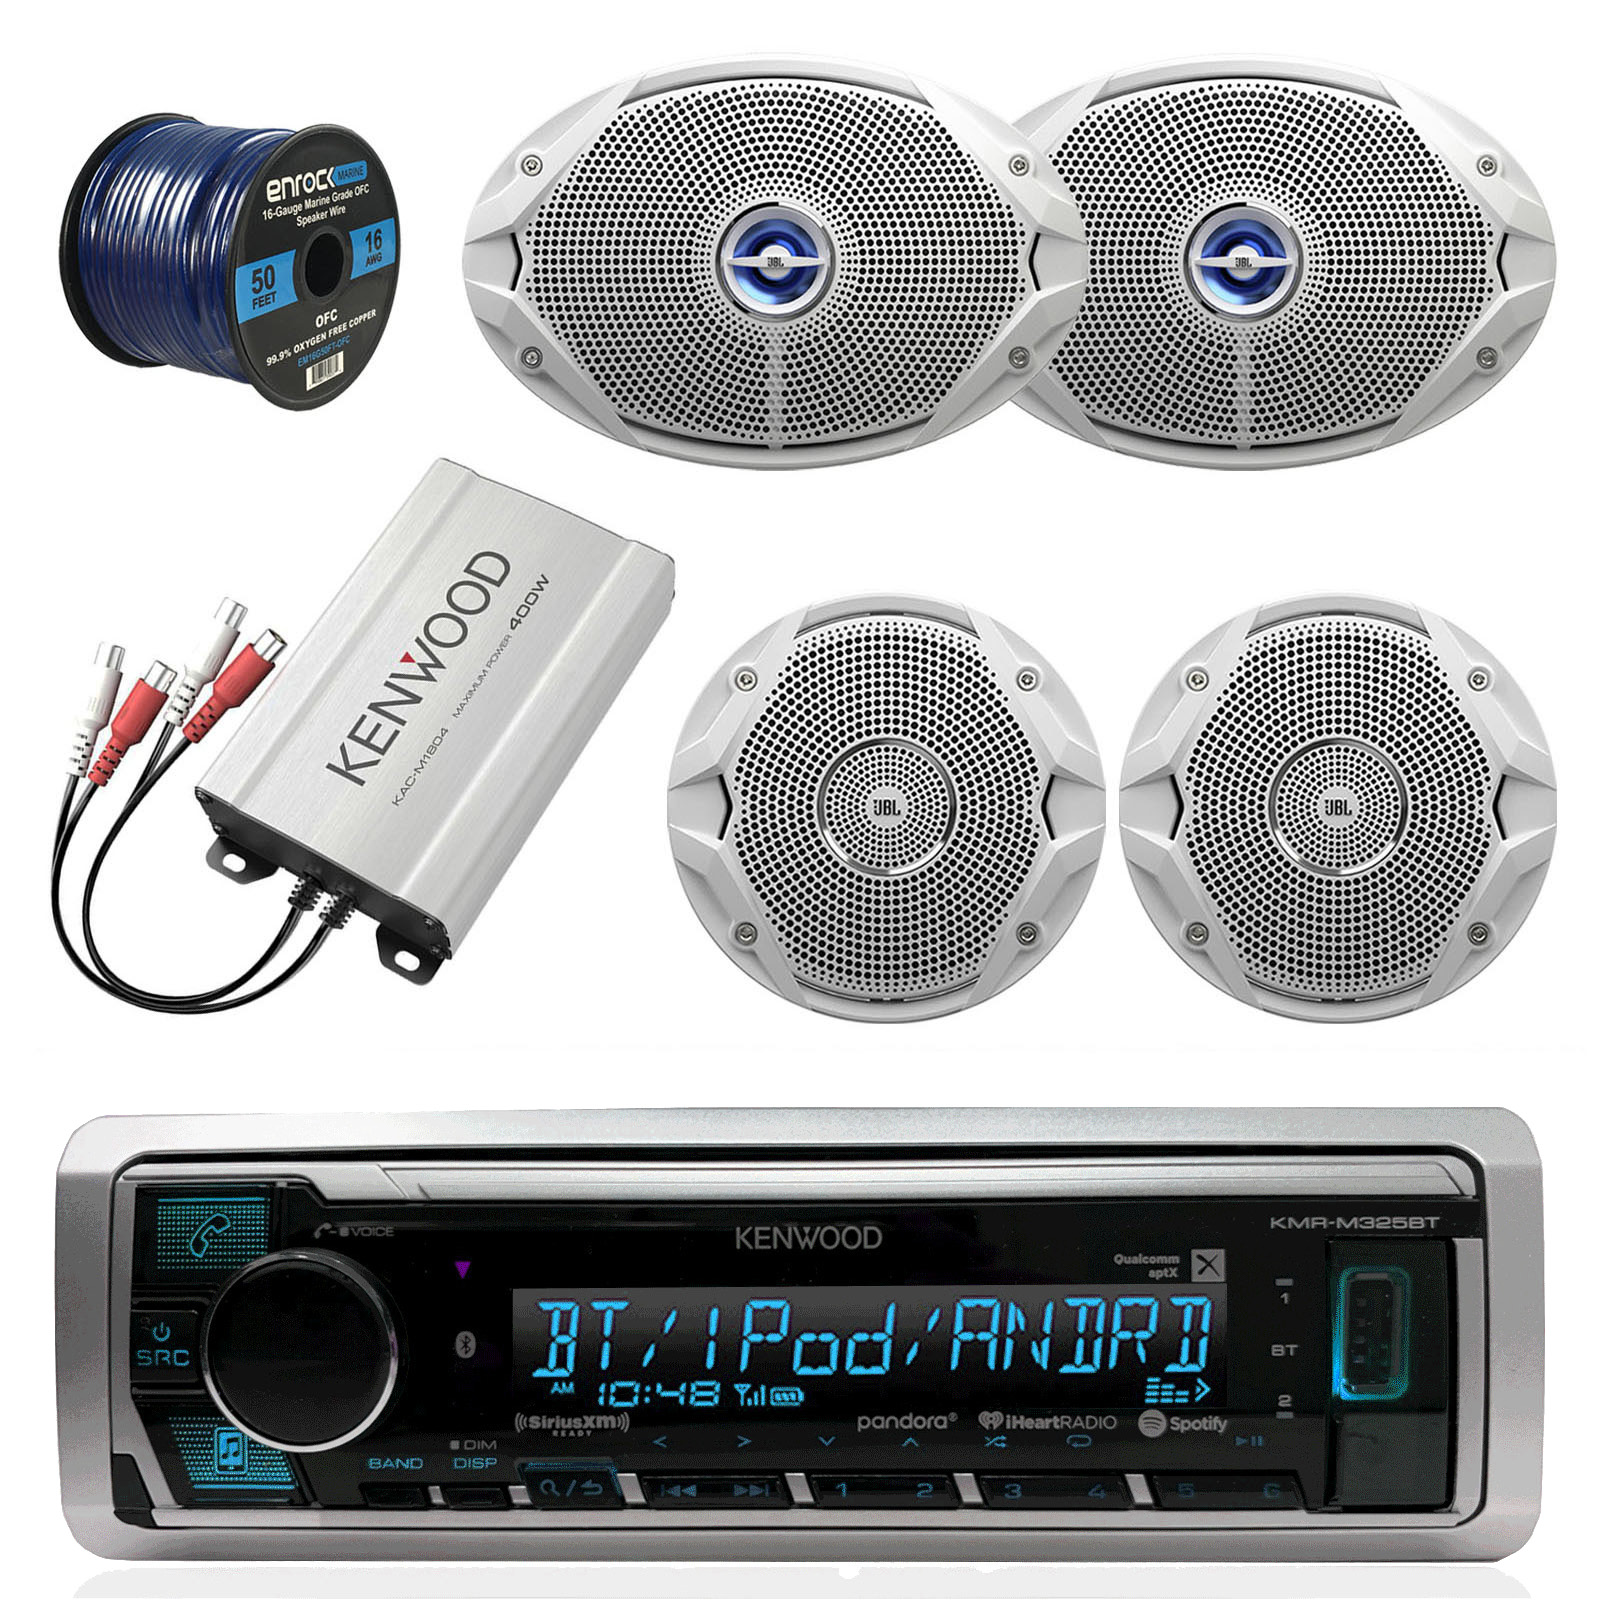 "Kenwood KMR-M325BT Bluetooth Marine Audio Receiver Bundle Combo With Compact 400-Watt Amplifier + 2x JBL 6x9"" 2-Way Coaxial Speakers + 2x JBL 6.5"" Inch Boat Speakers + Enrock 50 Foot 16g Speaker Wire"